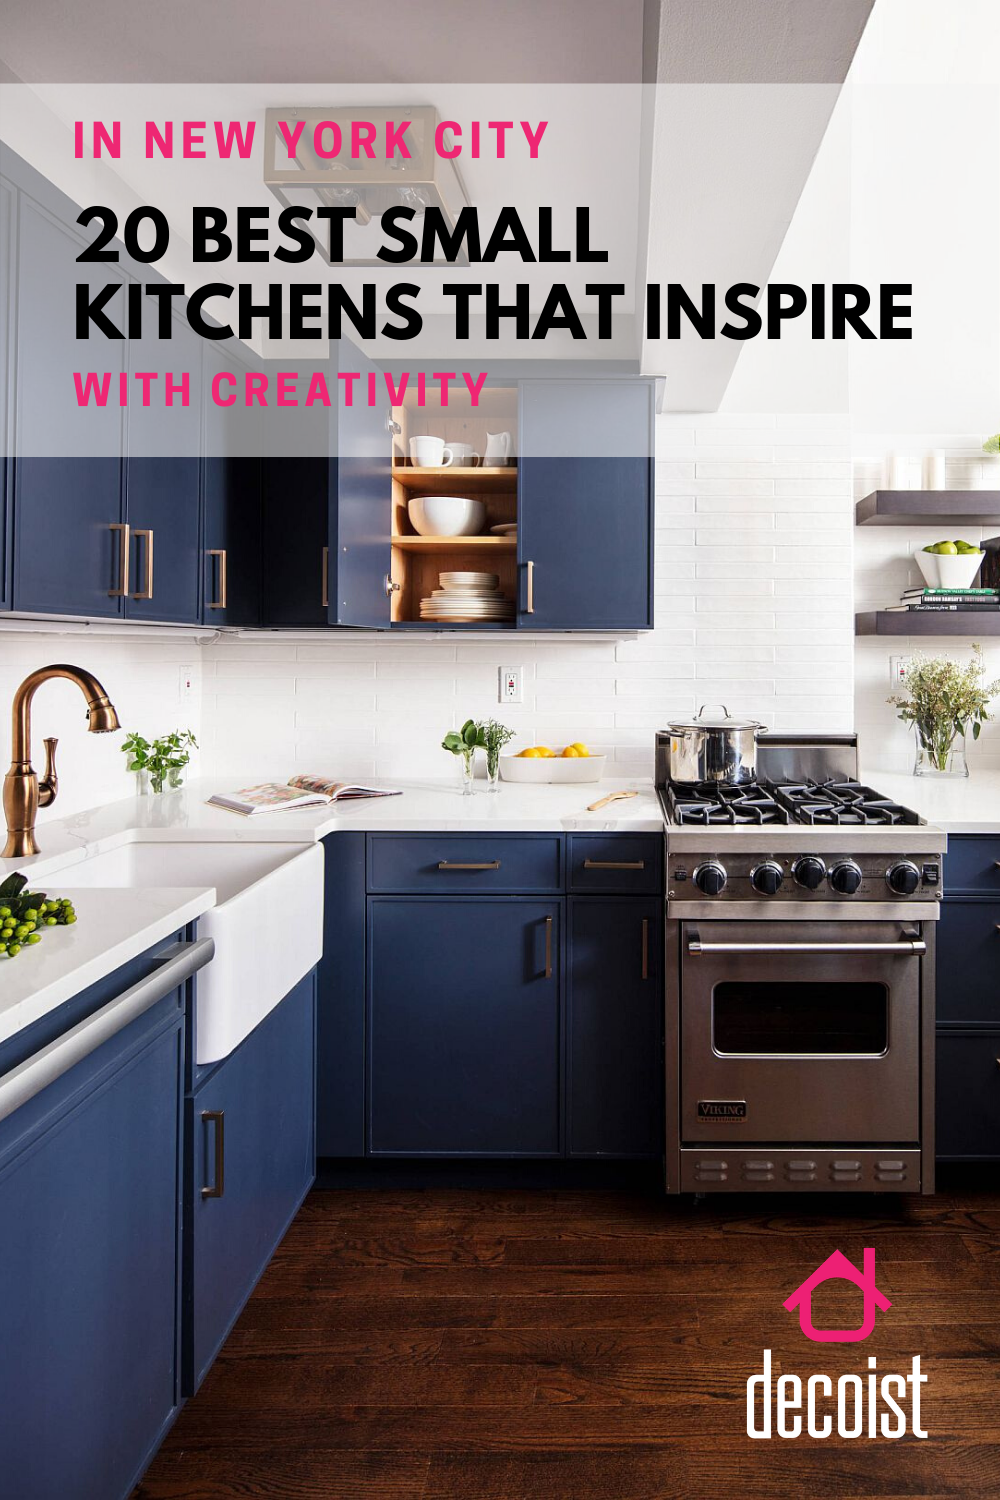 20 Best Small Kitchens From New York City That Inspire With Creativity Kitchen Style Kitchen Cabinets Small Kitchen